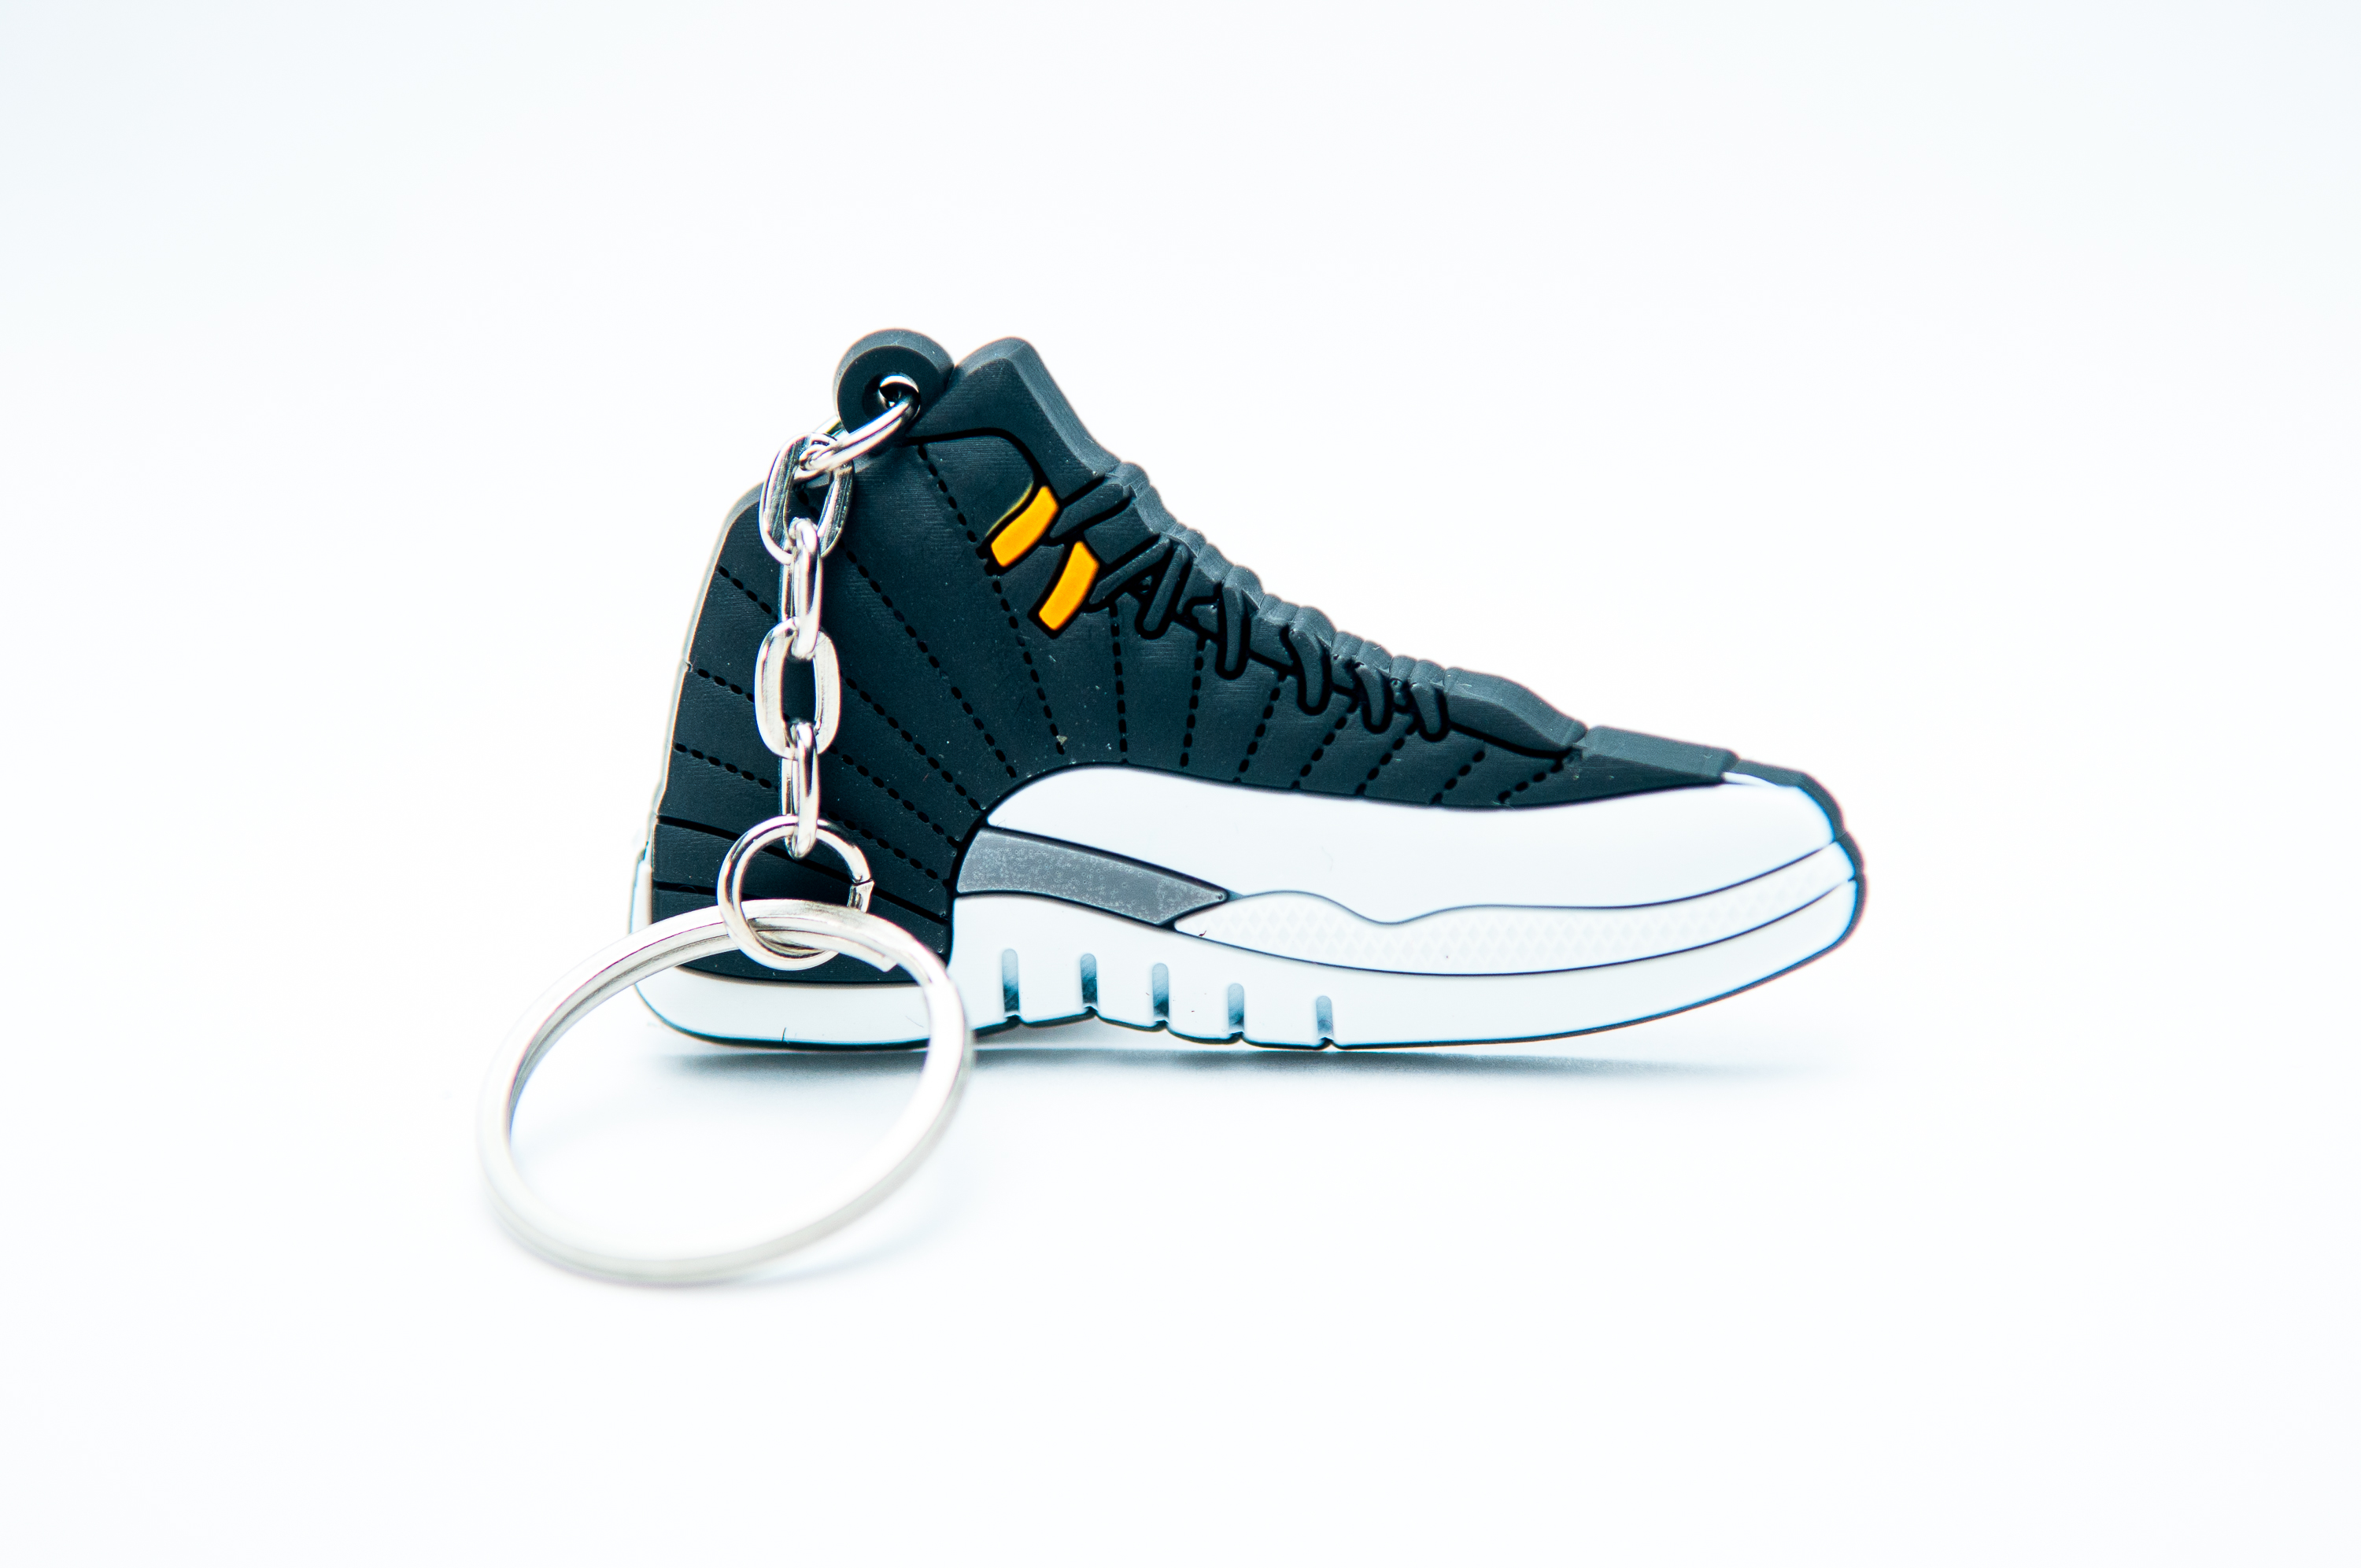 half off e9bd9 68f12 Nike Air Jordan 12 Retro Black White Grey - Kool Keyrings